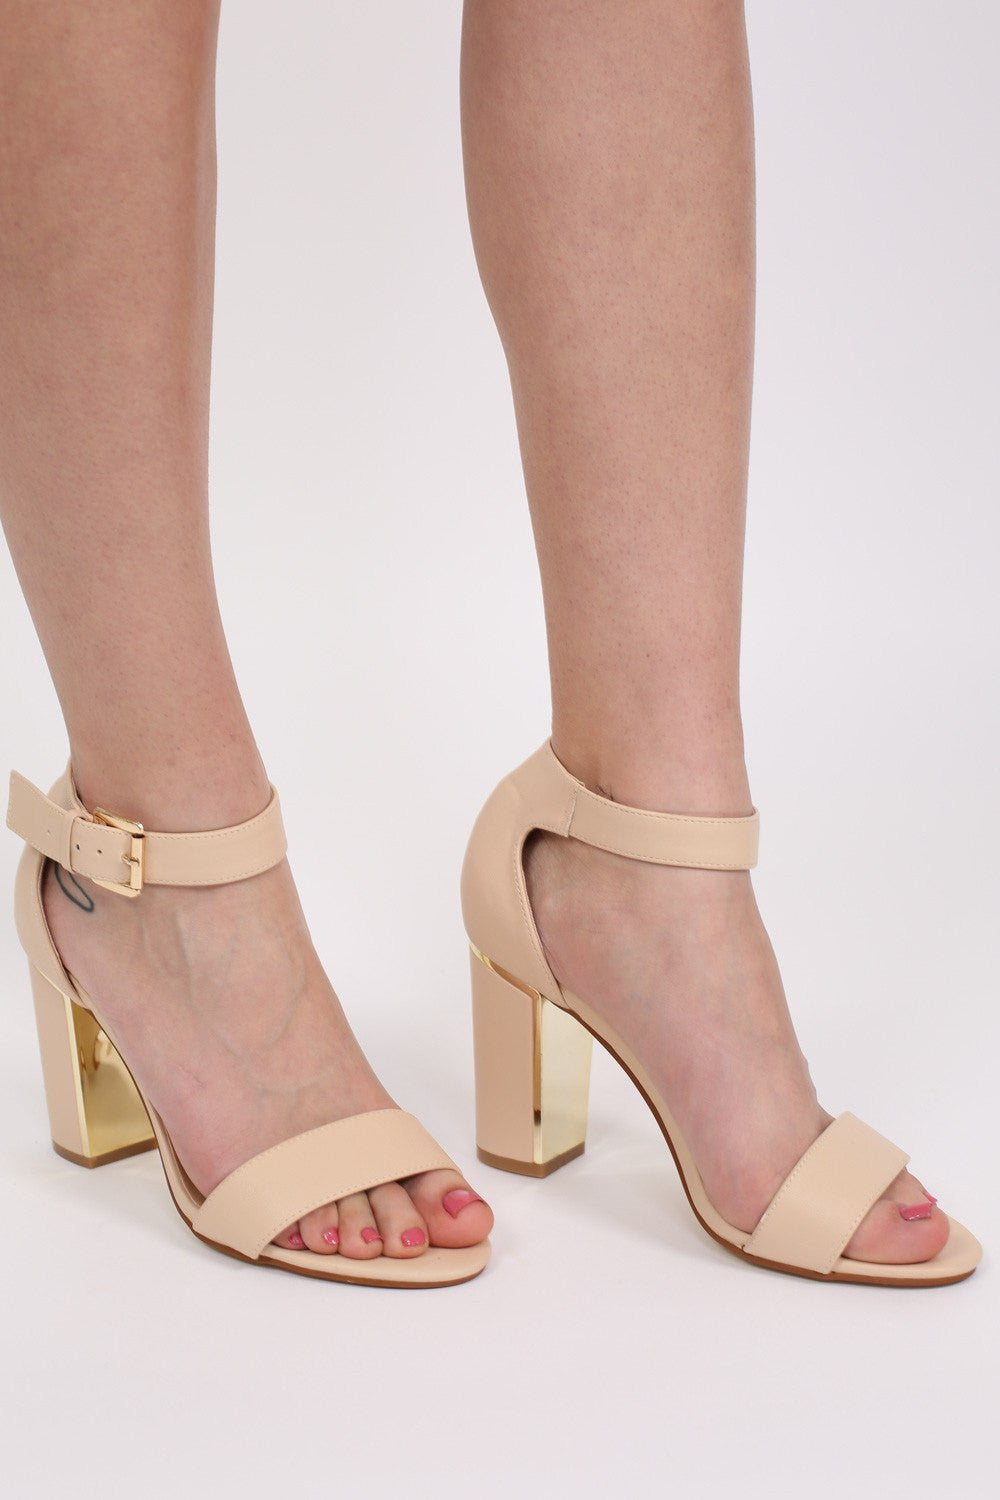 Block Heel Strappy Sandals in Nude MODEL FRONT